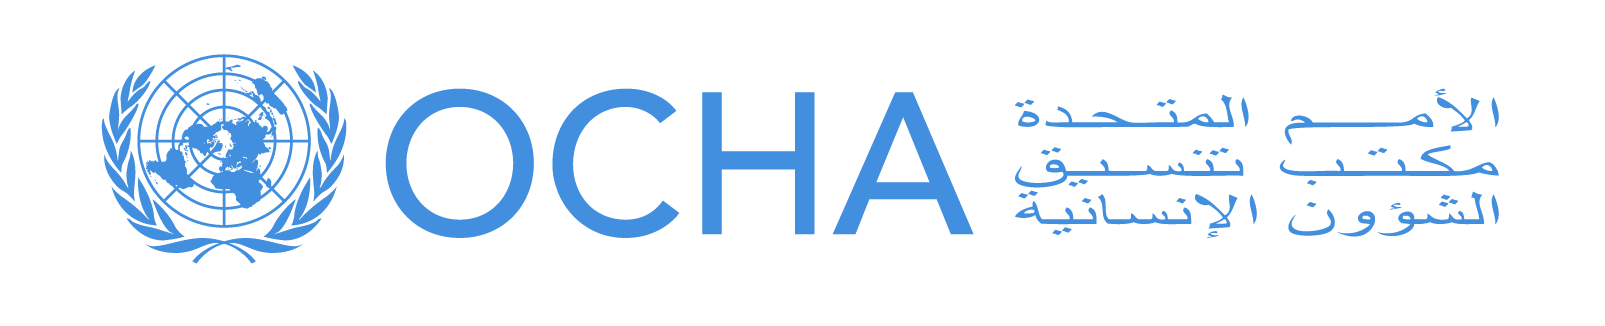 United Nations Office For The Coordination Of Humanitarian Affairs - UNOCHA